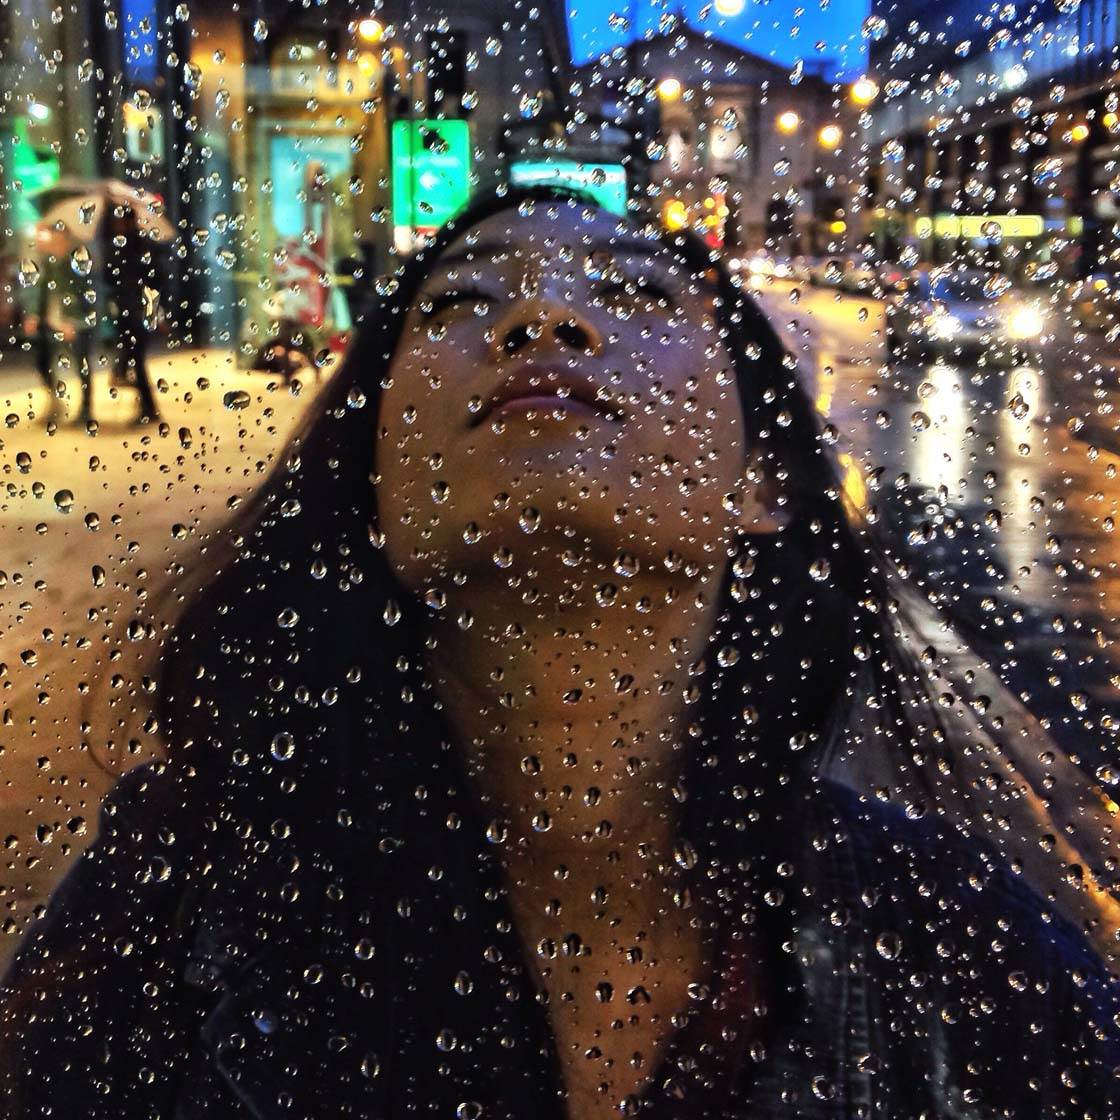 iPhone Photos Rain 17